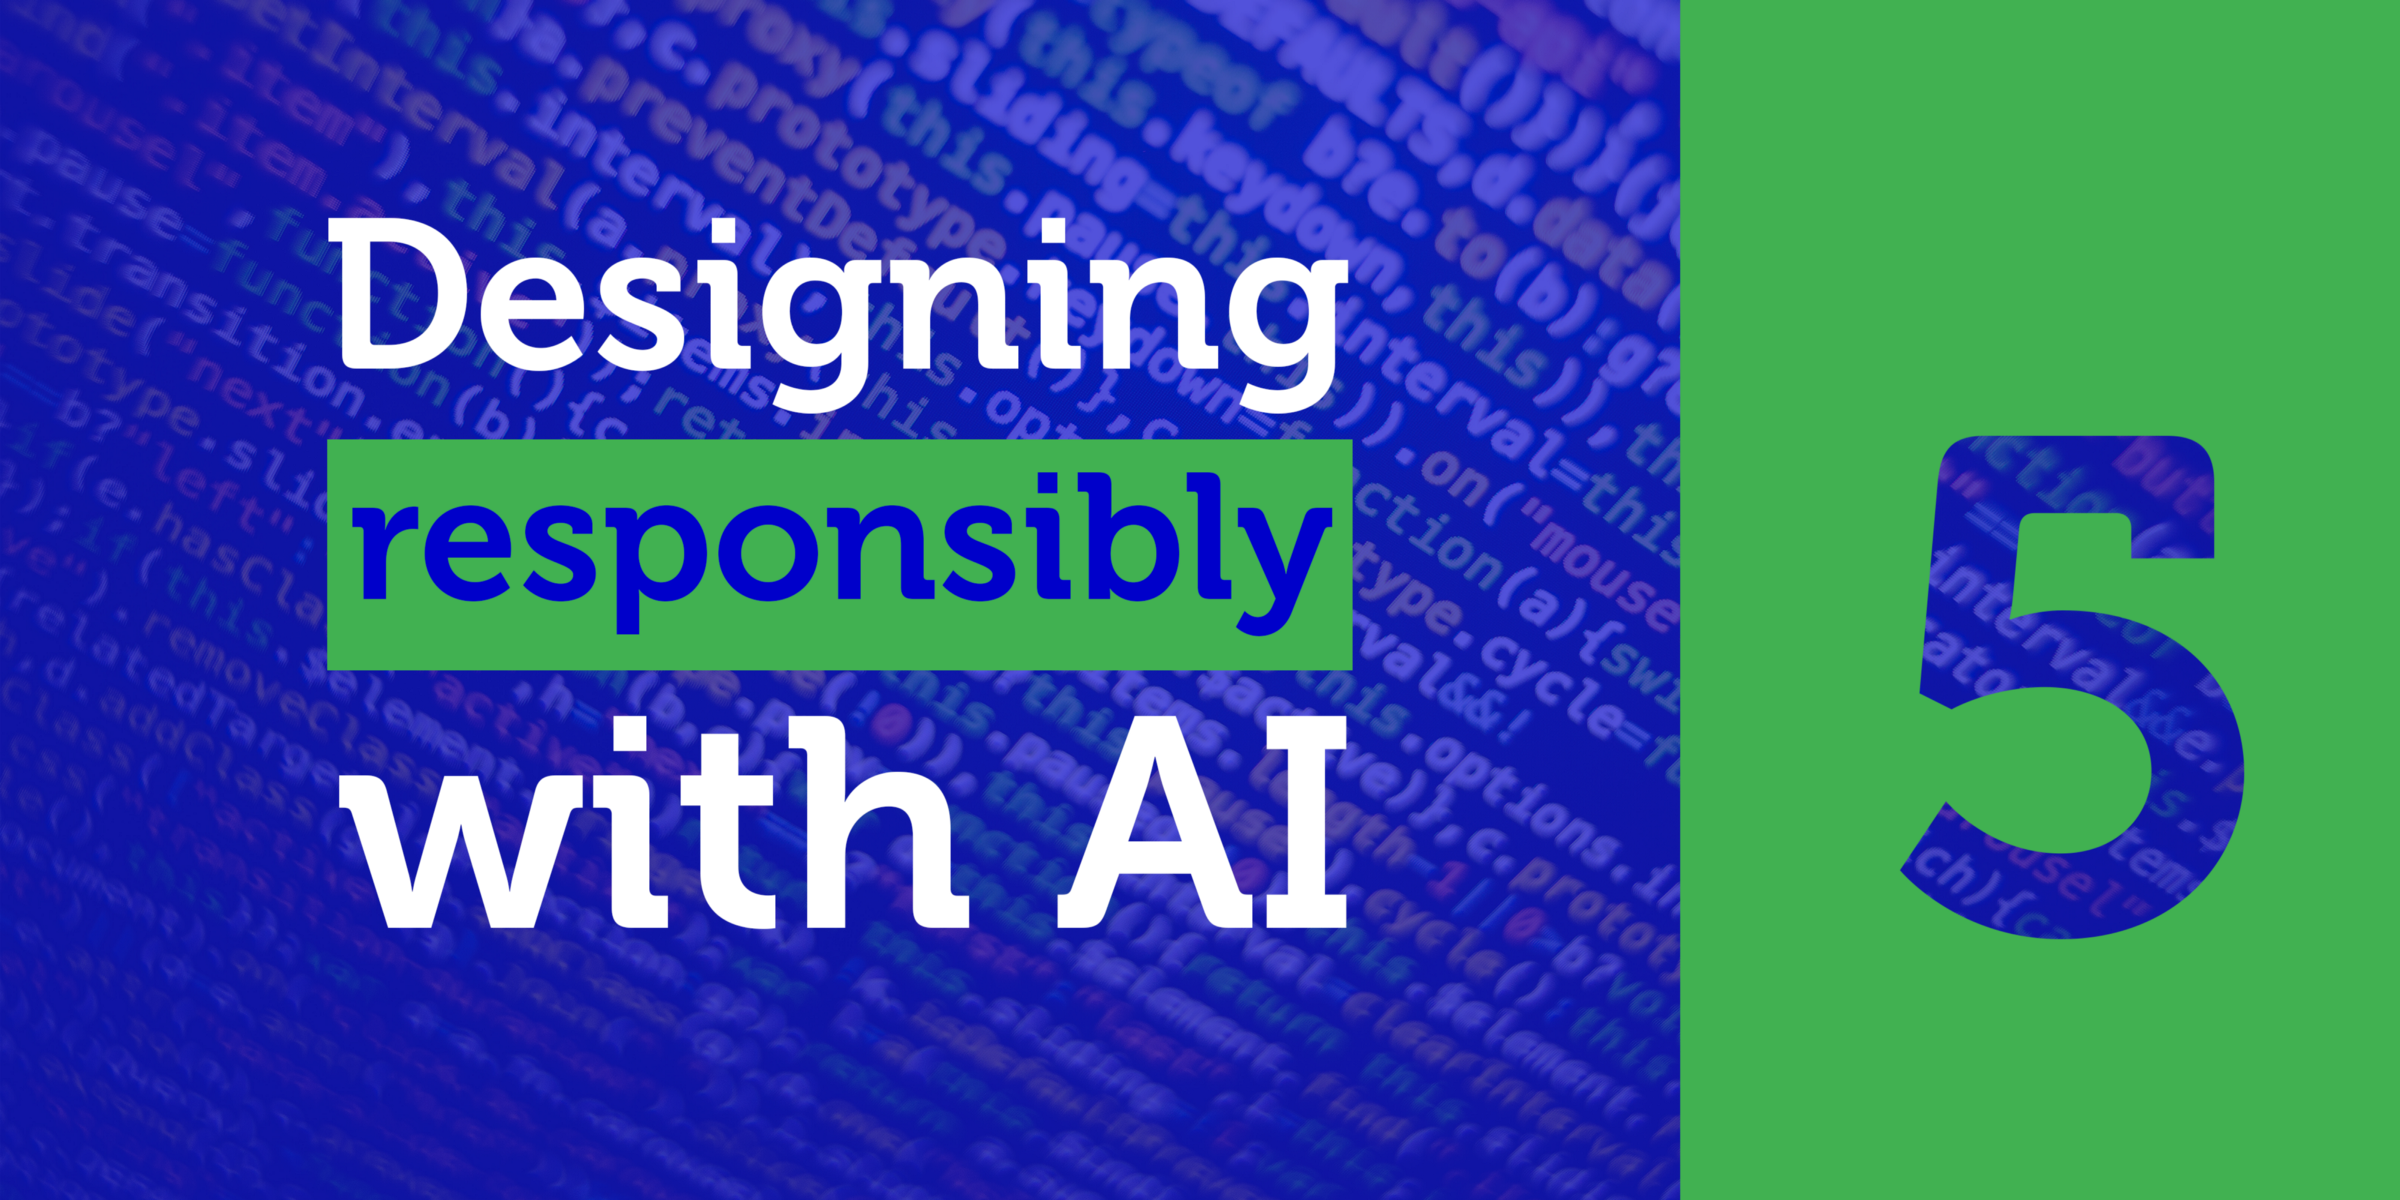 Designing responsibly with AI: how designers & technologists perceive ethics